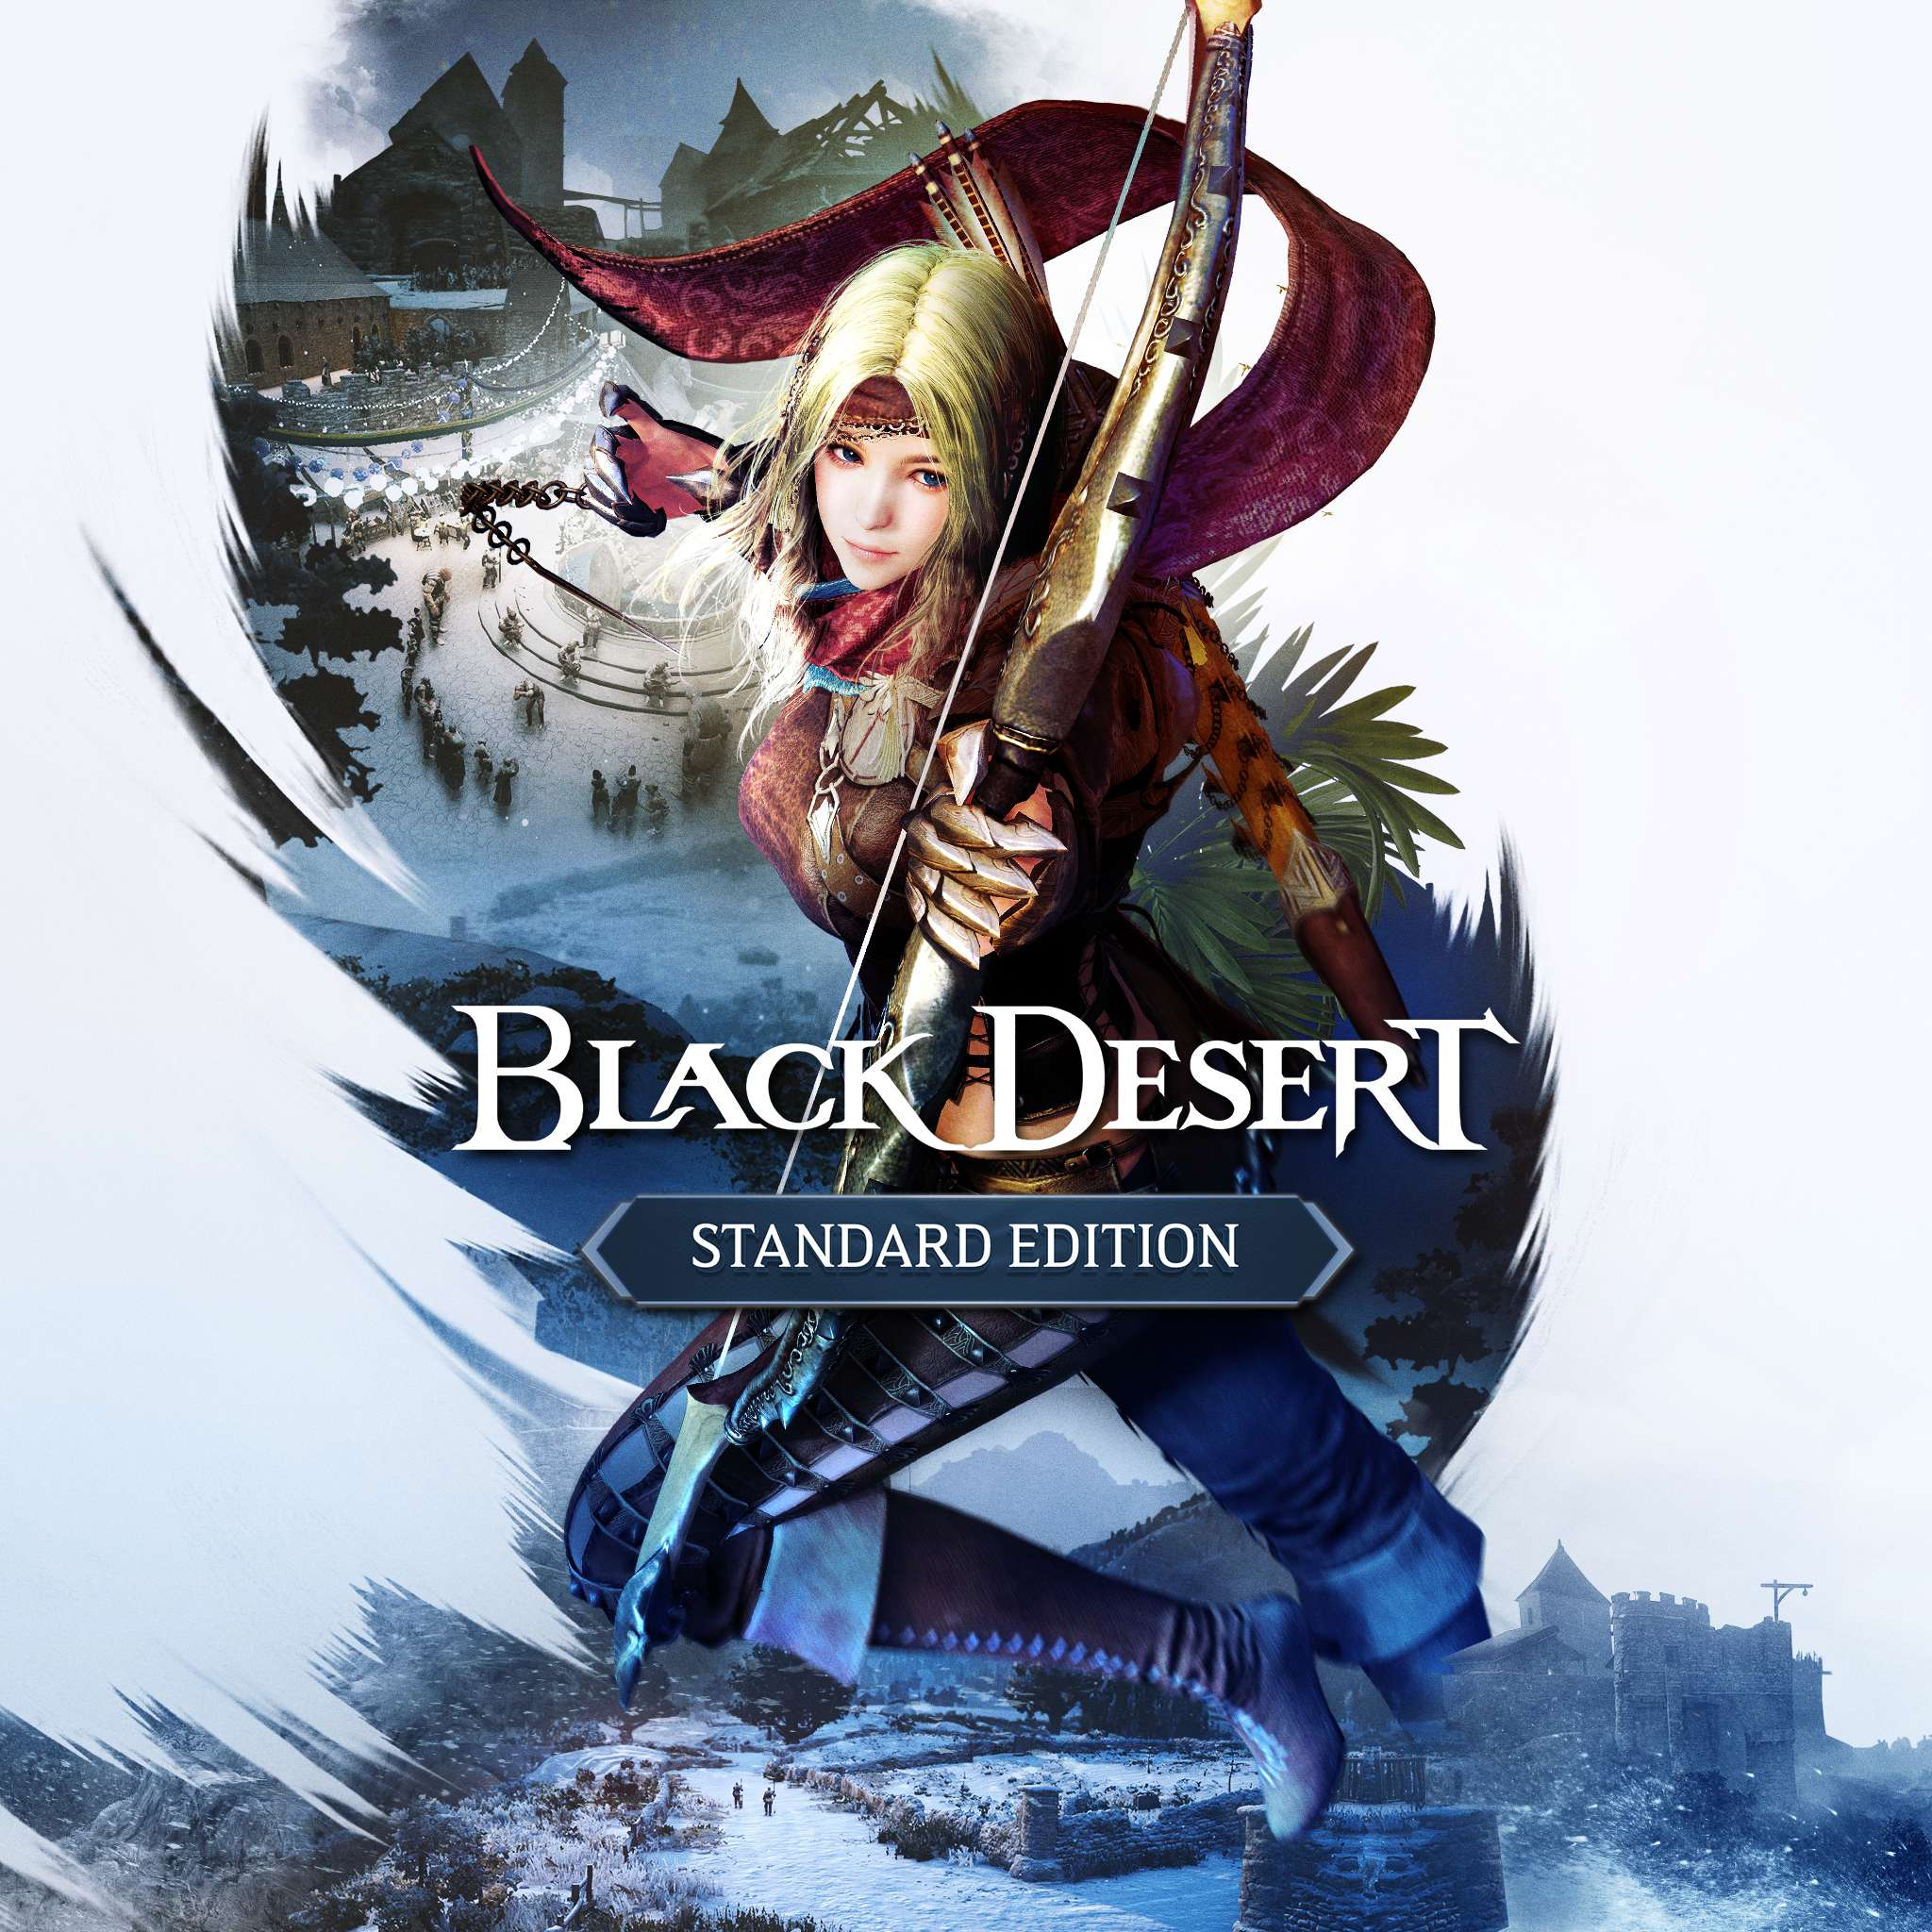 Thumbnail of Black Desert : Standard Edition on PS4